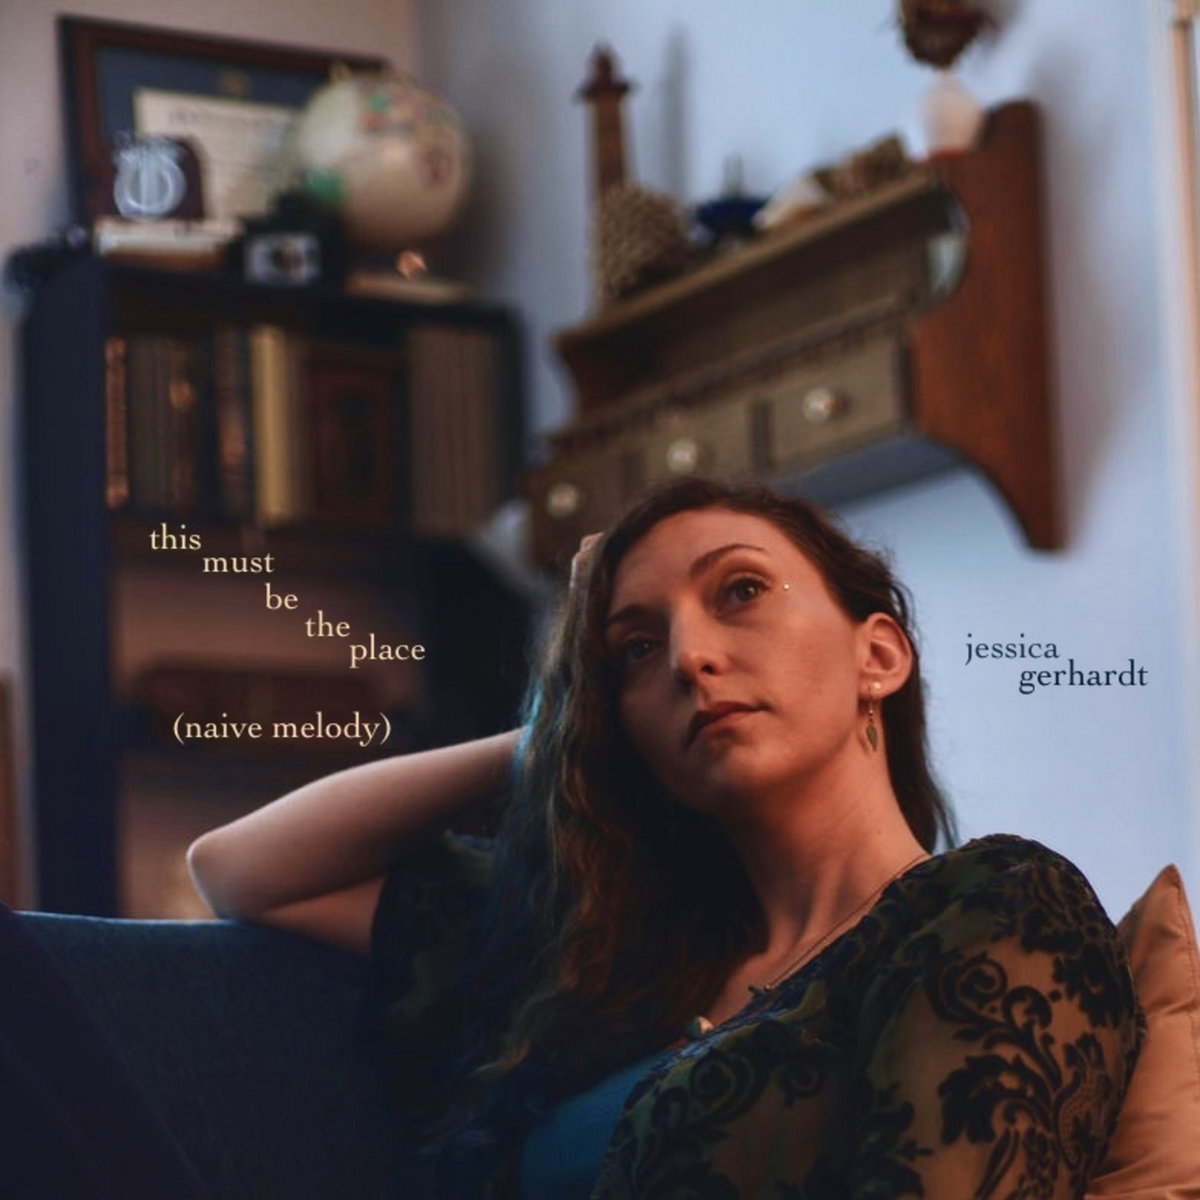 This Must Be The Place (Naive Melody) by Jessica Gerhardt